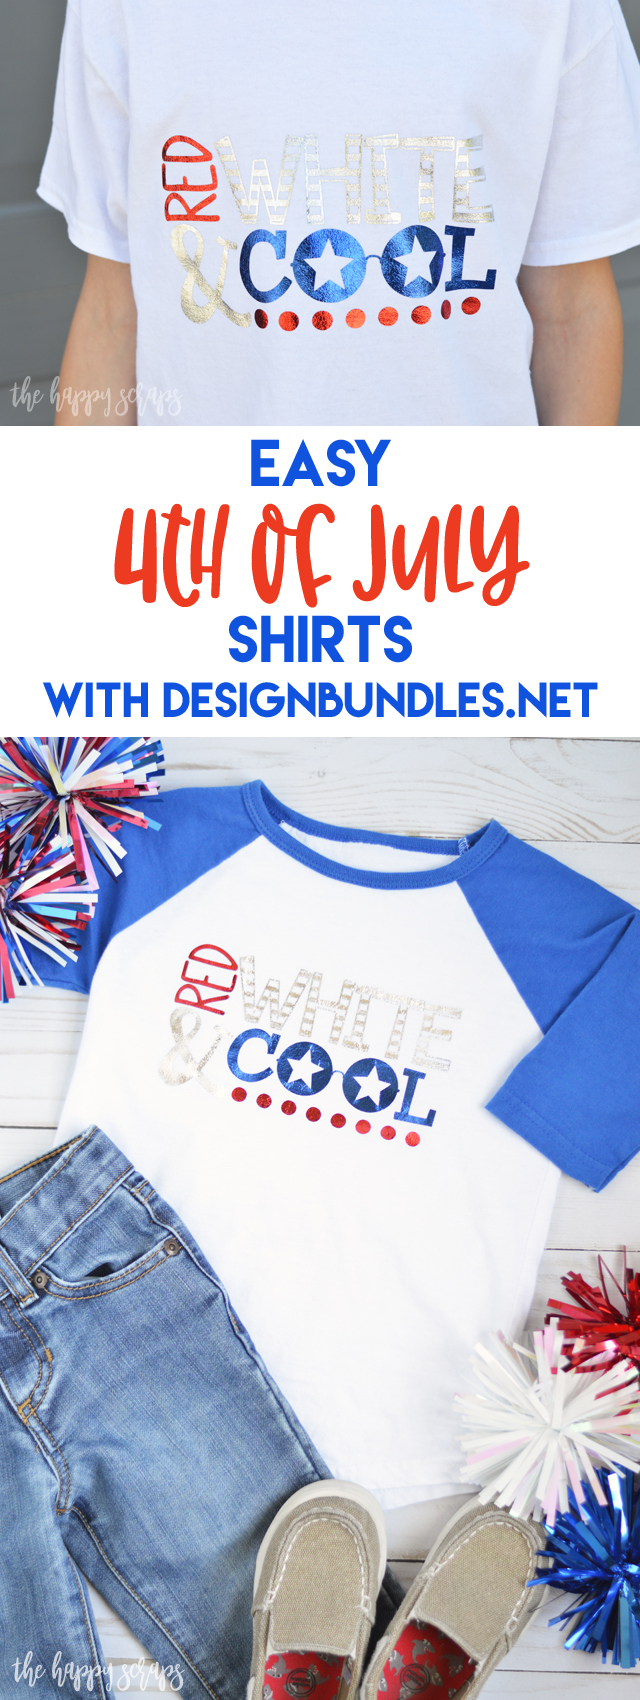 DesignBundles.net makes creating shirts for any occasion a simple task. Check out these Easy 4th of July Shirts that I made with one of their designs.